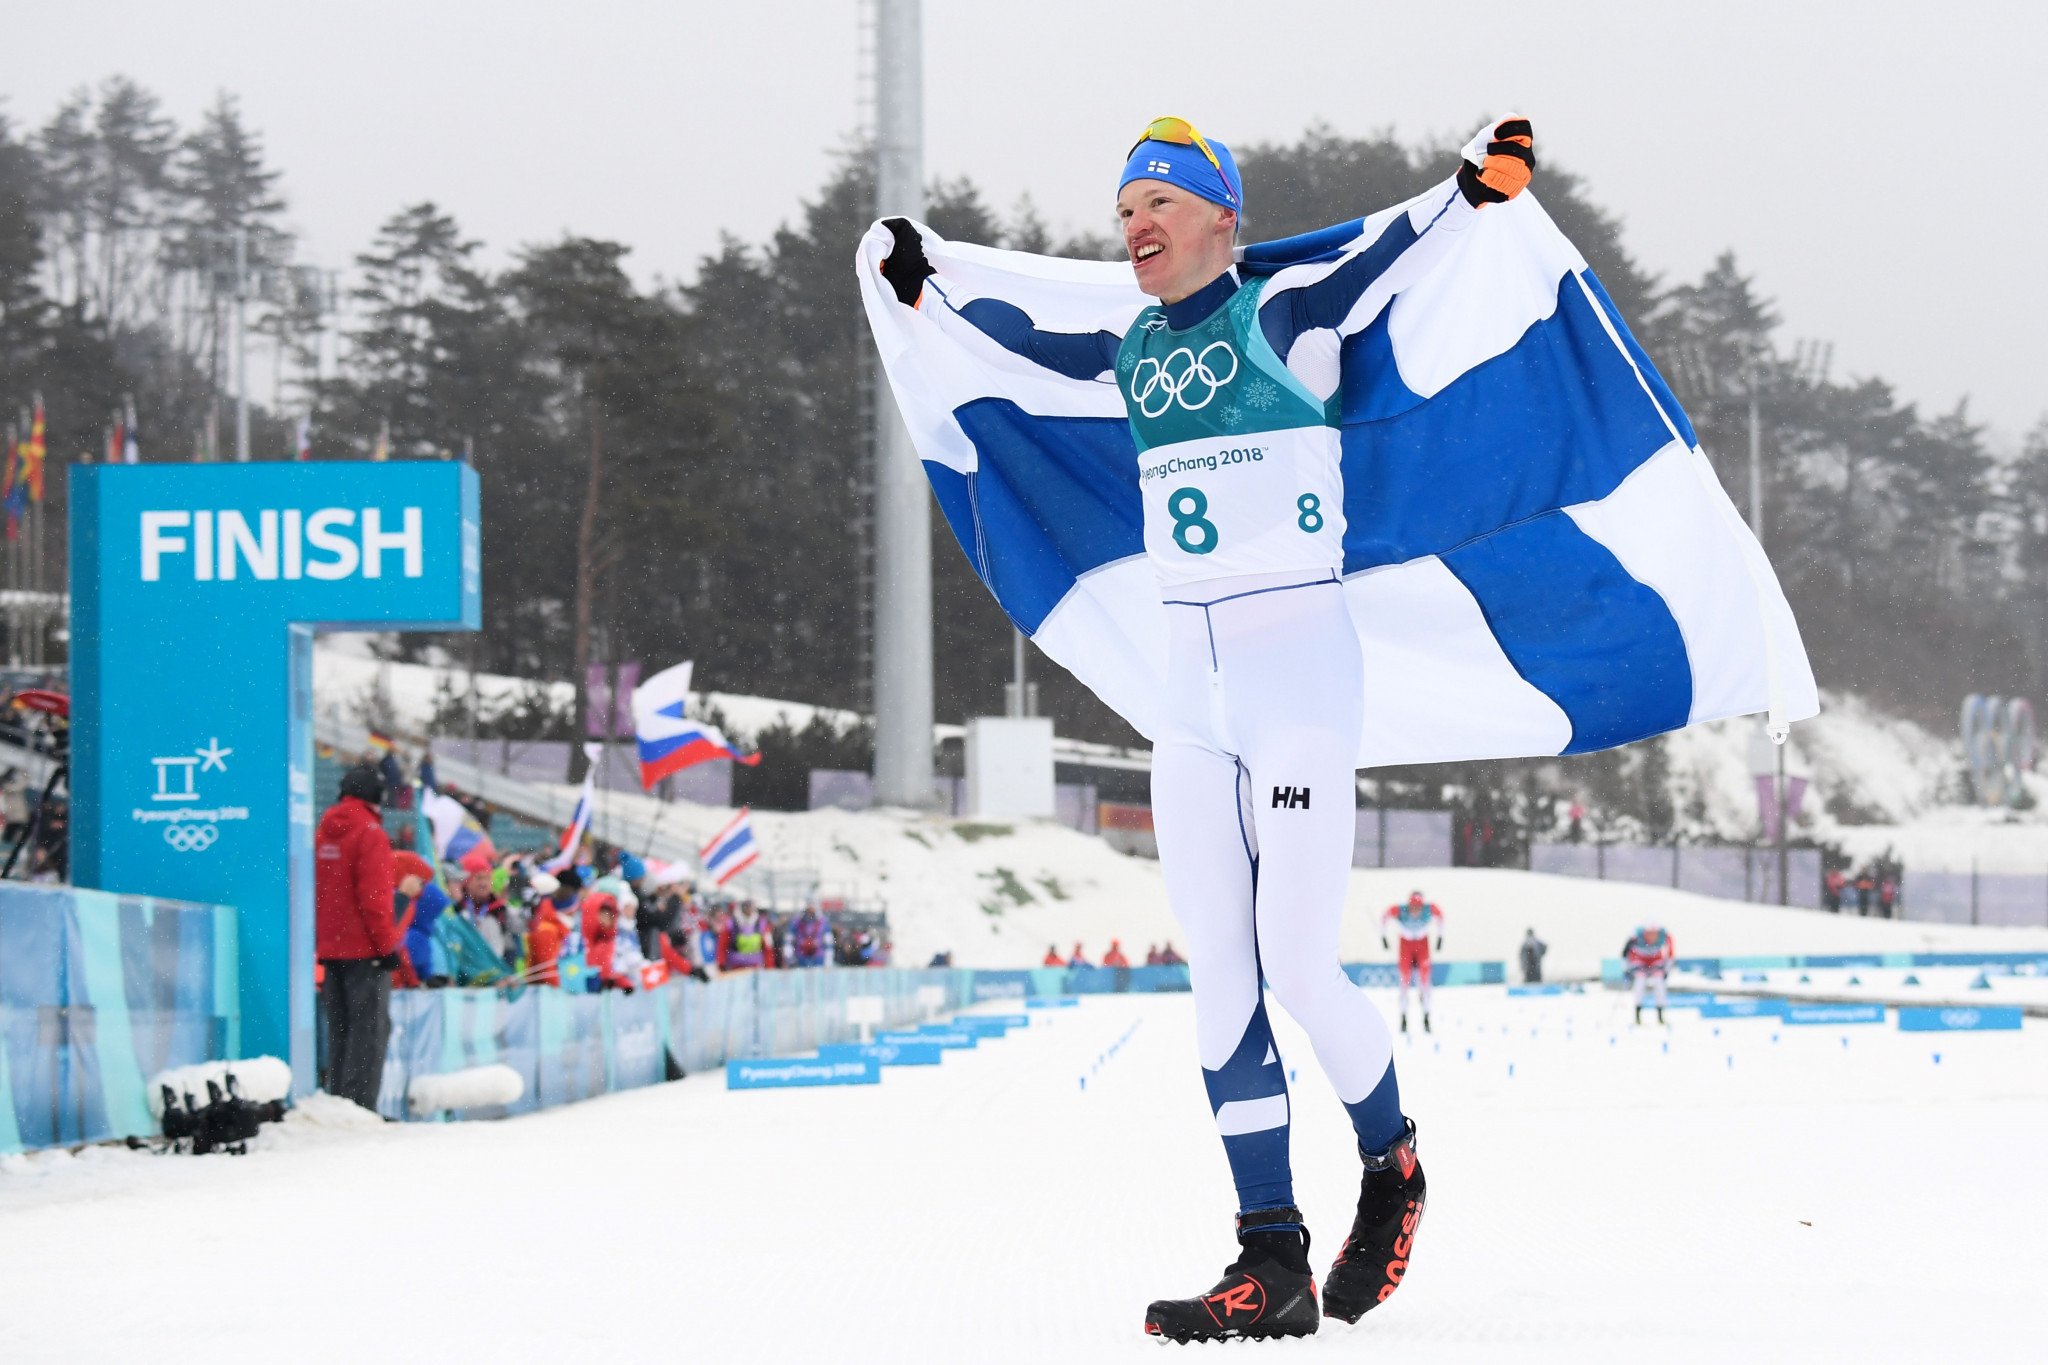 Finn wins men's 50km mass start classic to deny OAR gold at Pyeongchang 2018